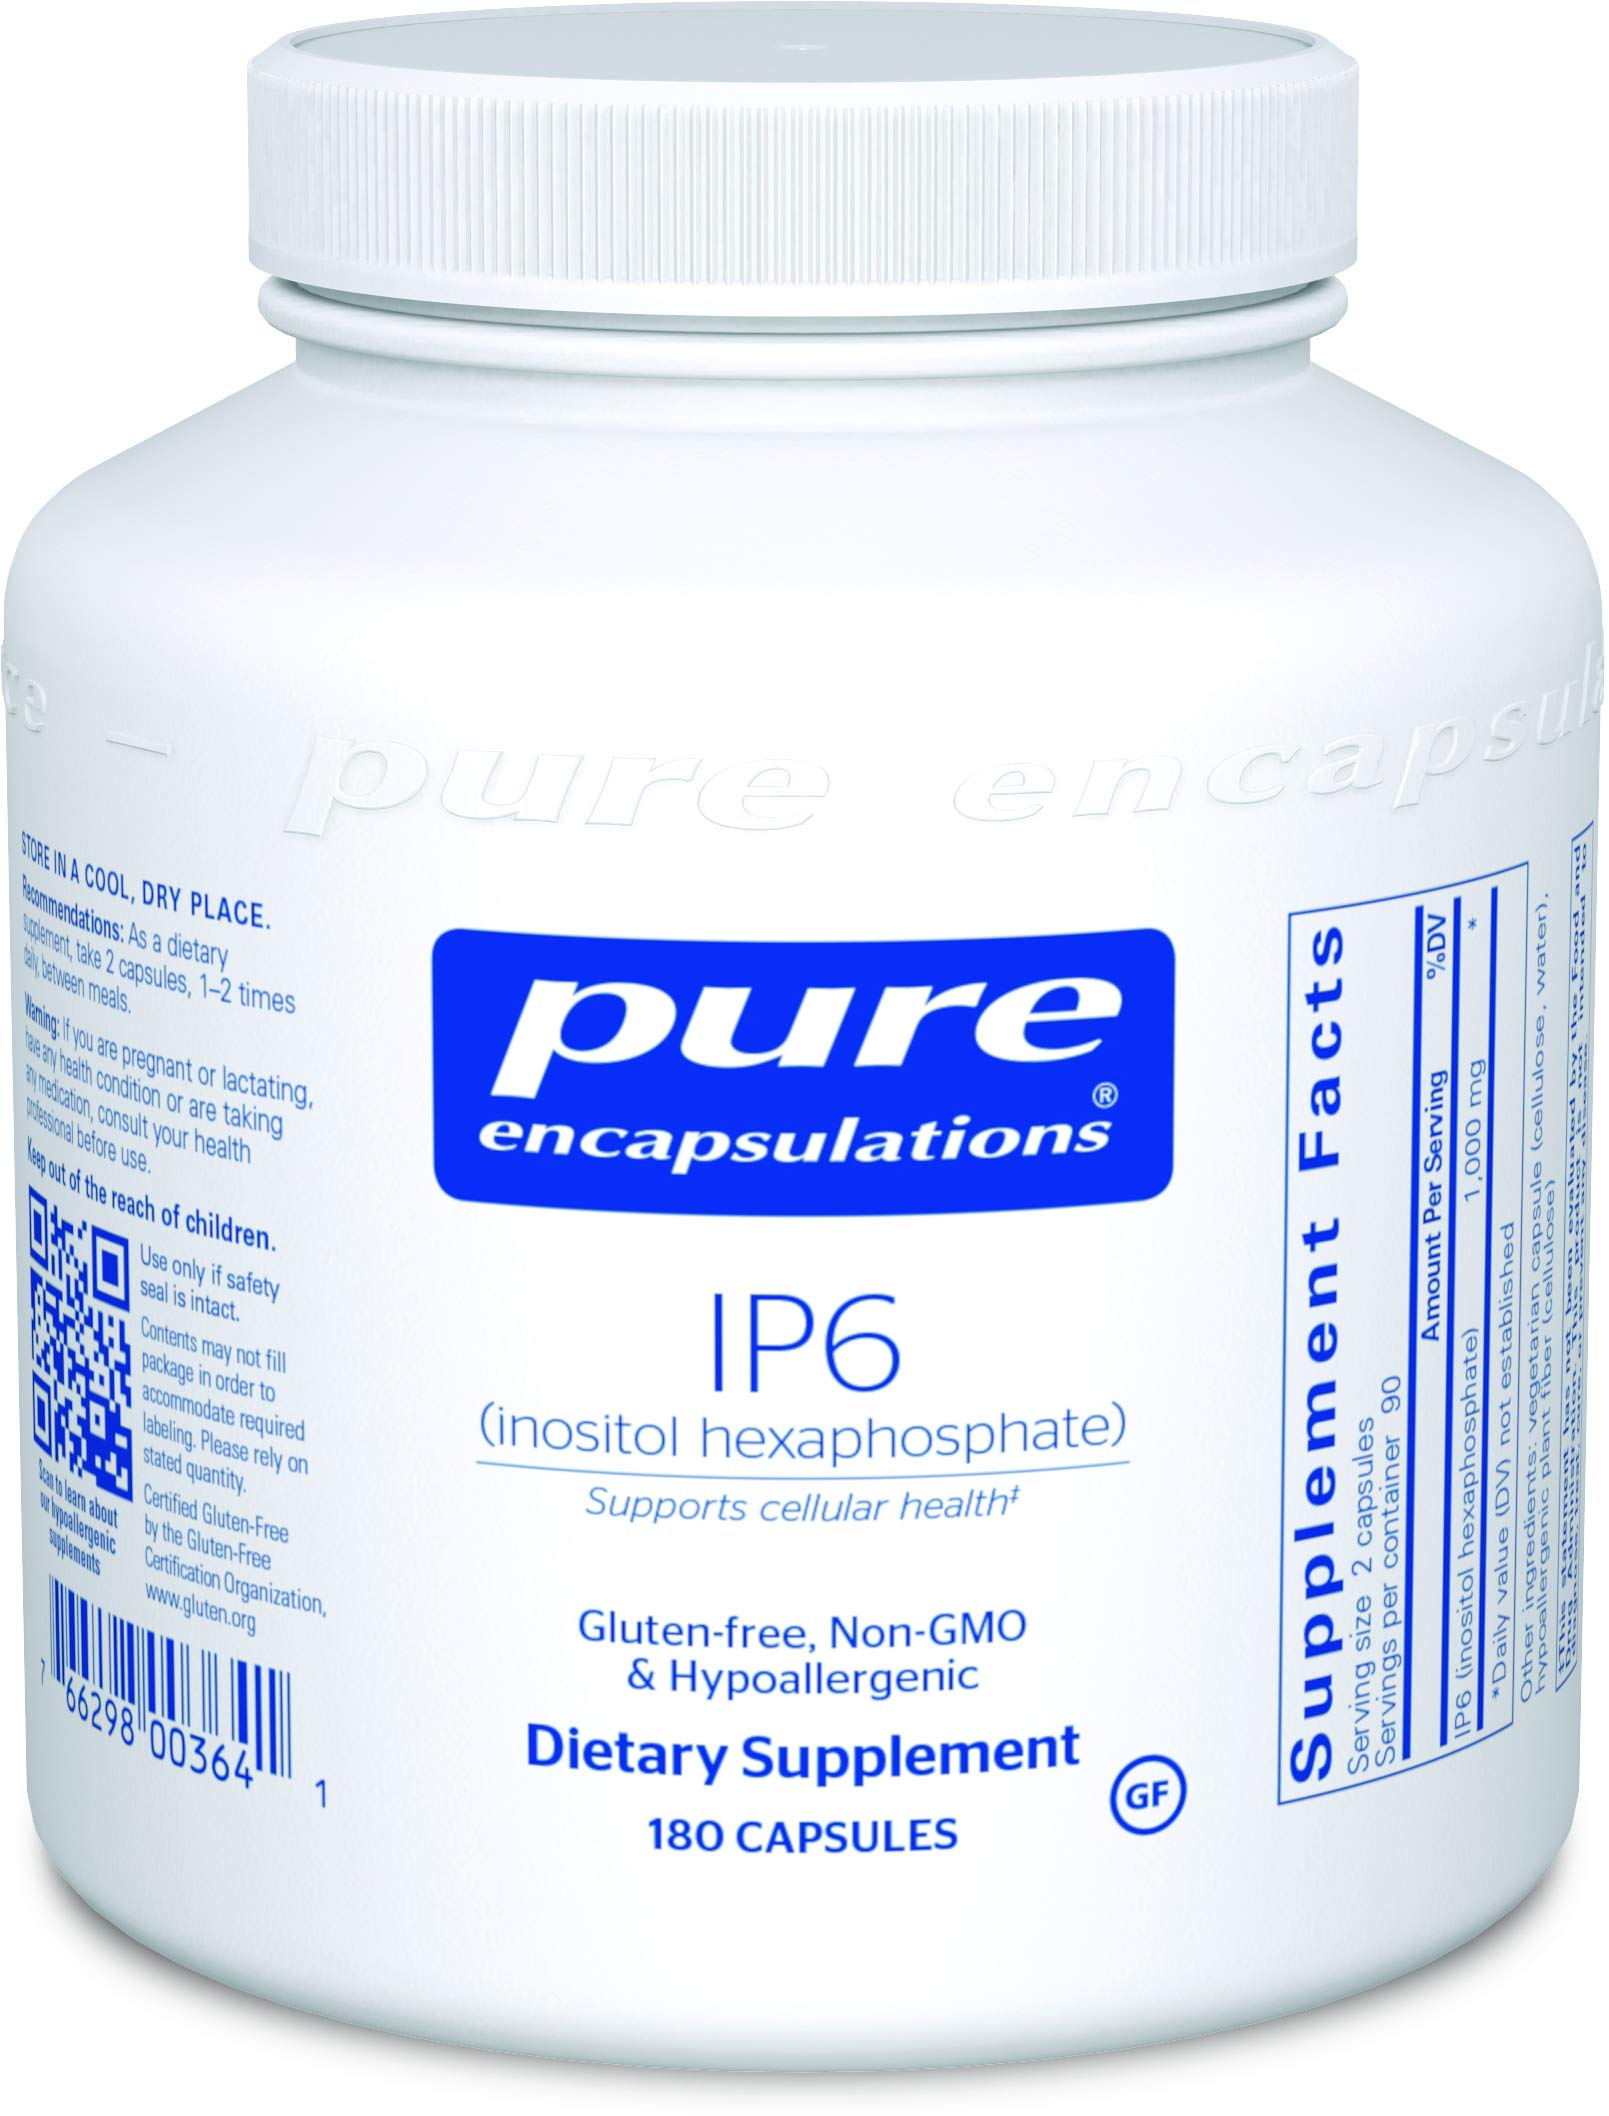 Pure Encapsulations - IP6 (Inositol Hexaphosphate) - Hypoallergenic Antioxidant Support for Prostate, Breast, Colon and Liver Cell Health* - 180 Capsules